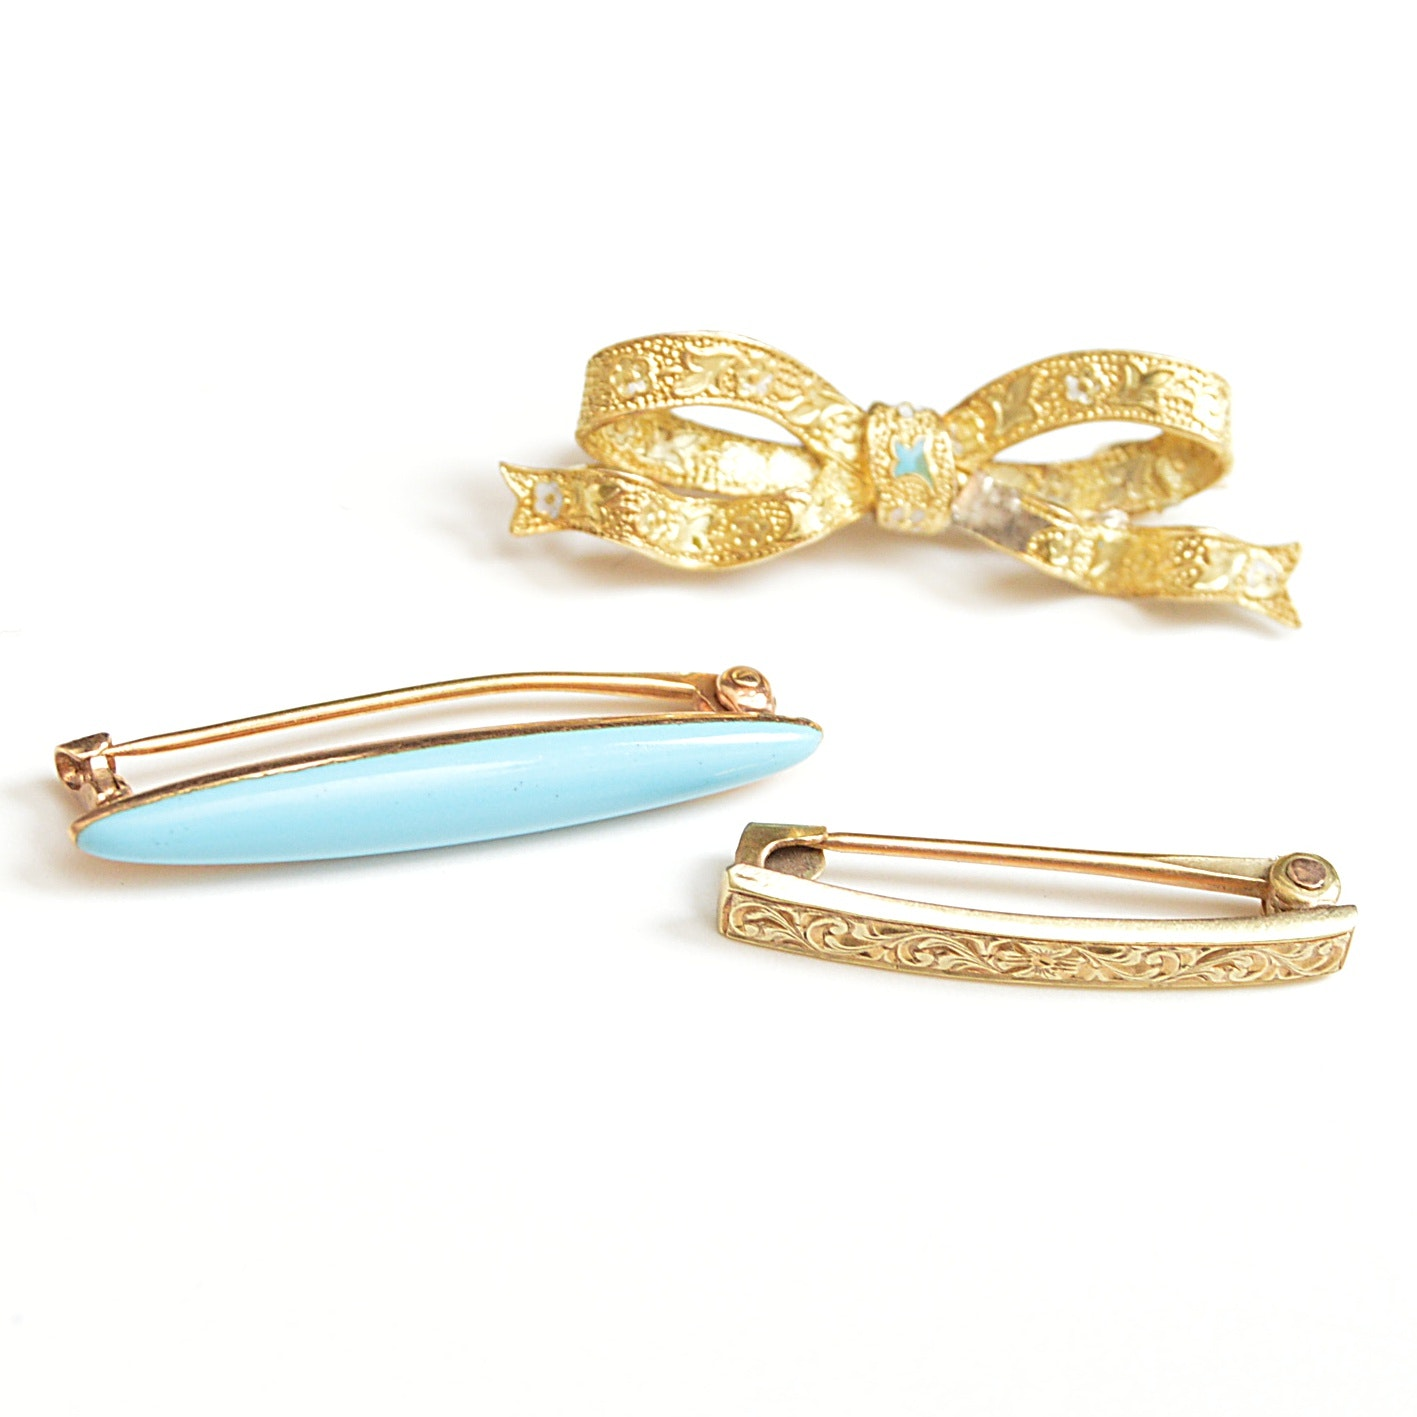 Art Nouveau 14K Yellow Gold and Enamel Lingerie Brooches